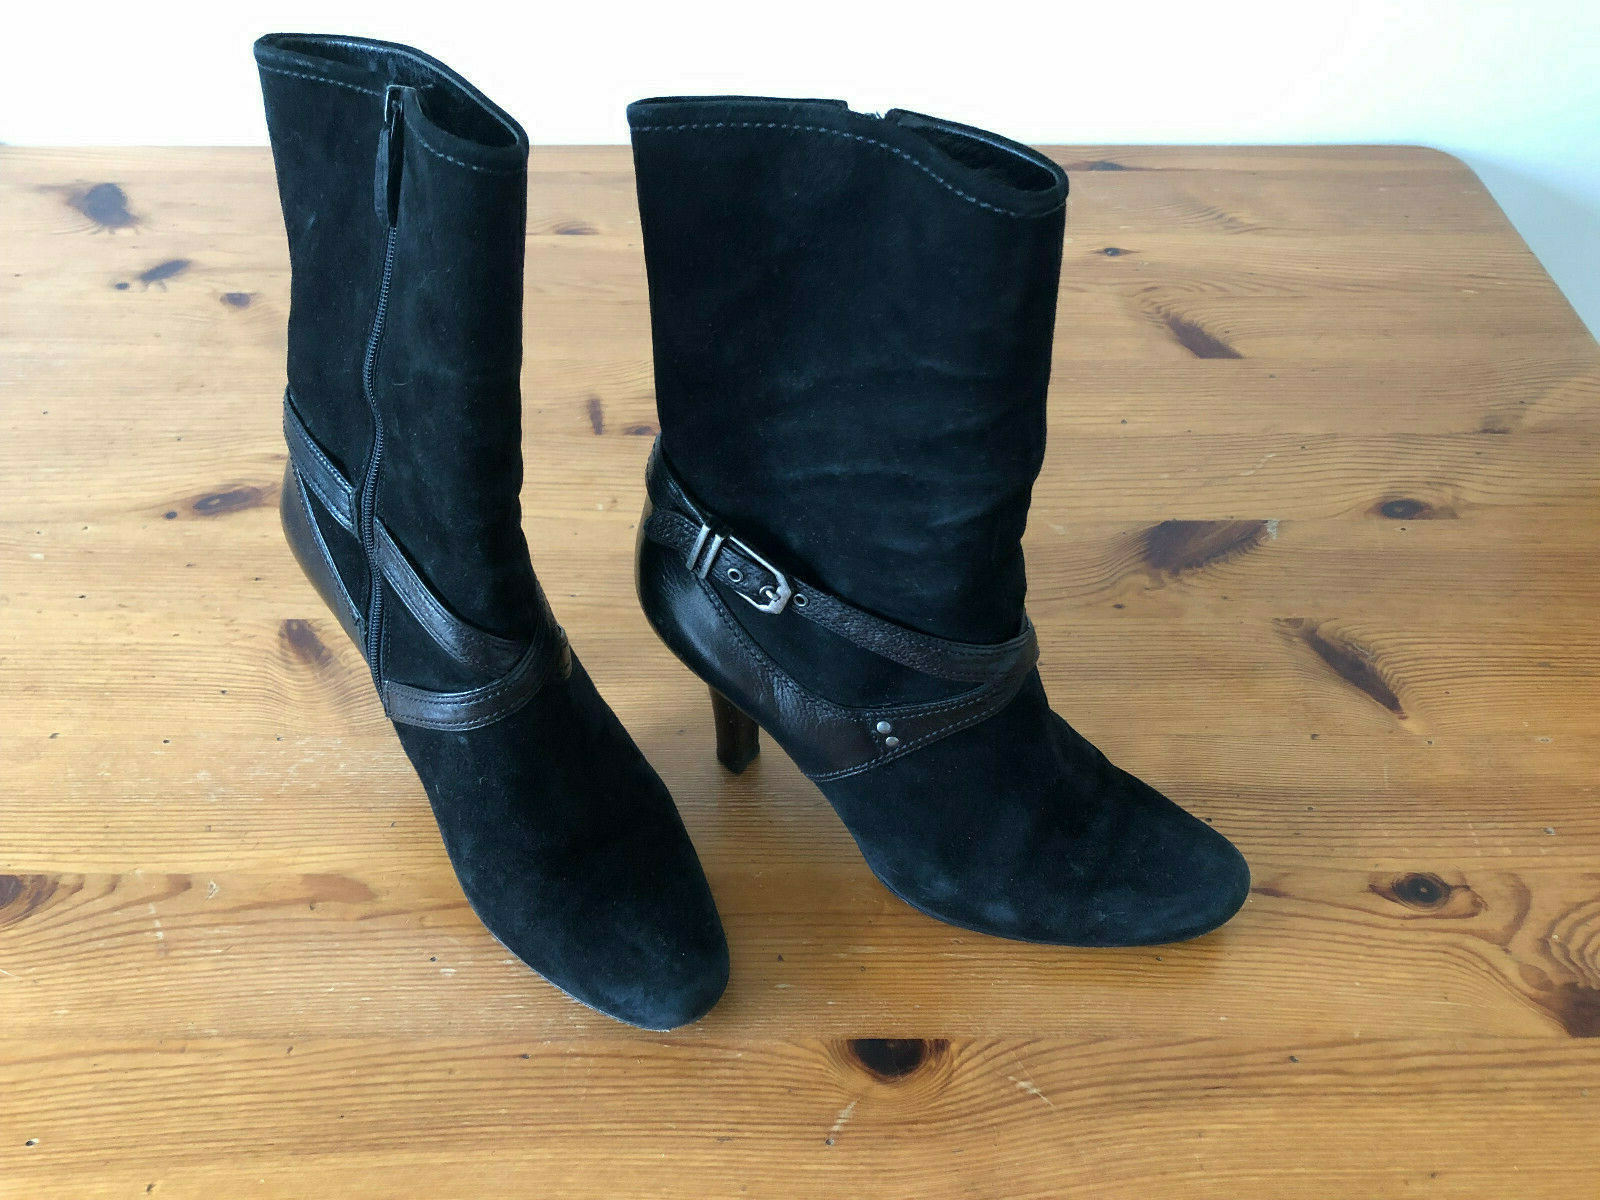 COLE HAAN Women's Suede Black Leather Mid Calf Sculpted Heel Short Boots Size 8B